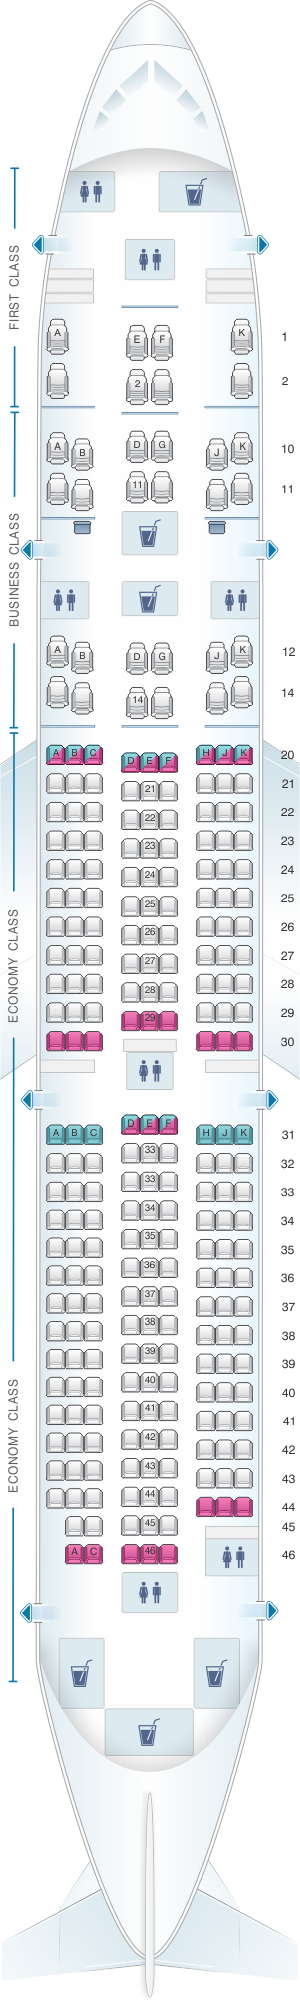 Seat map for Oman Air Boeing B787 9 V2